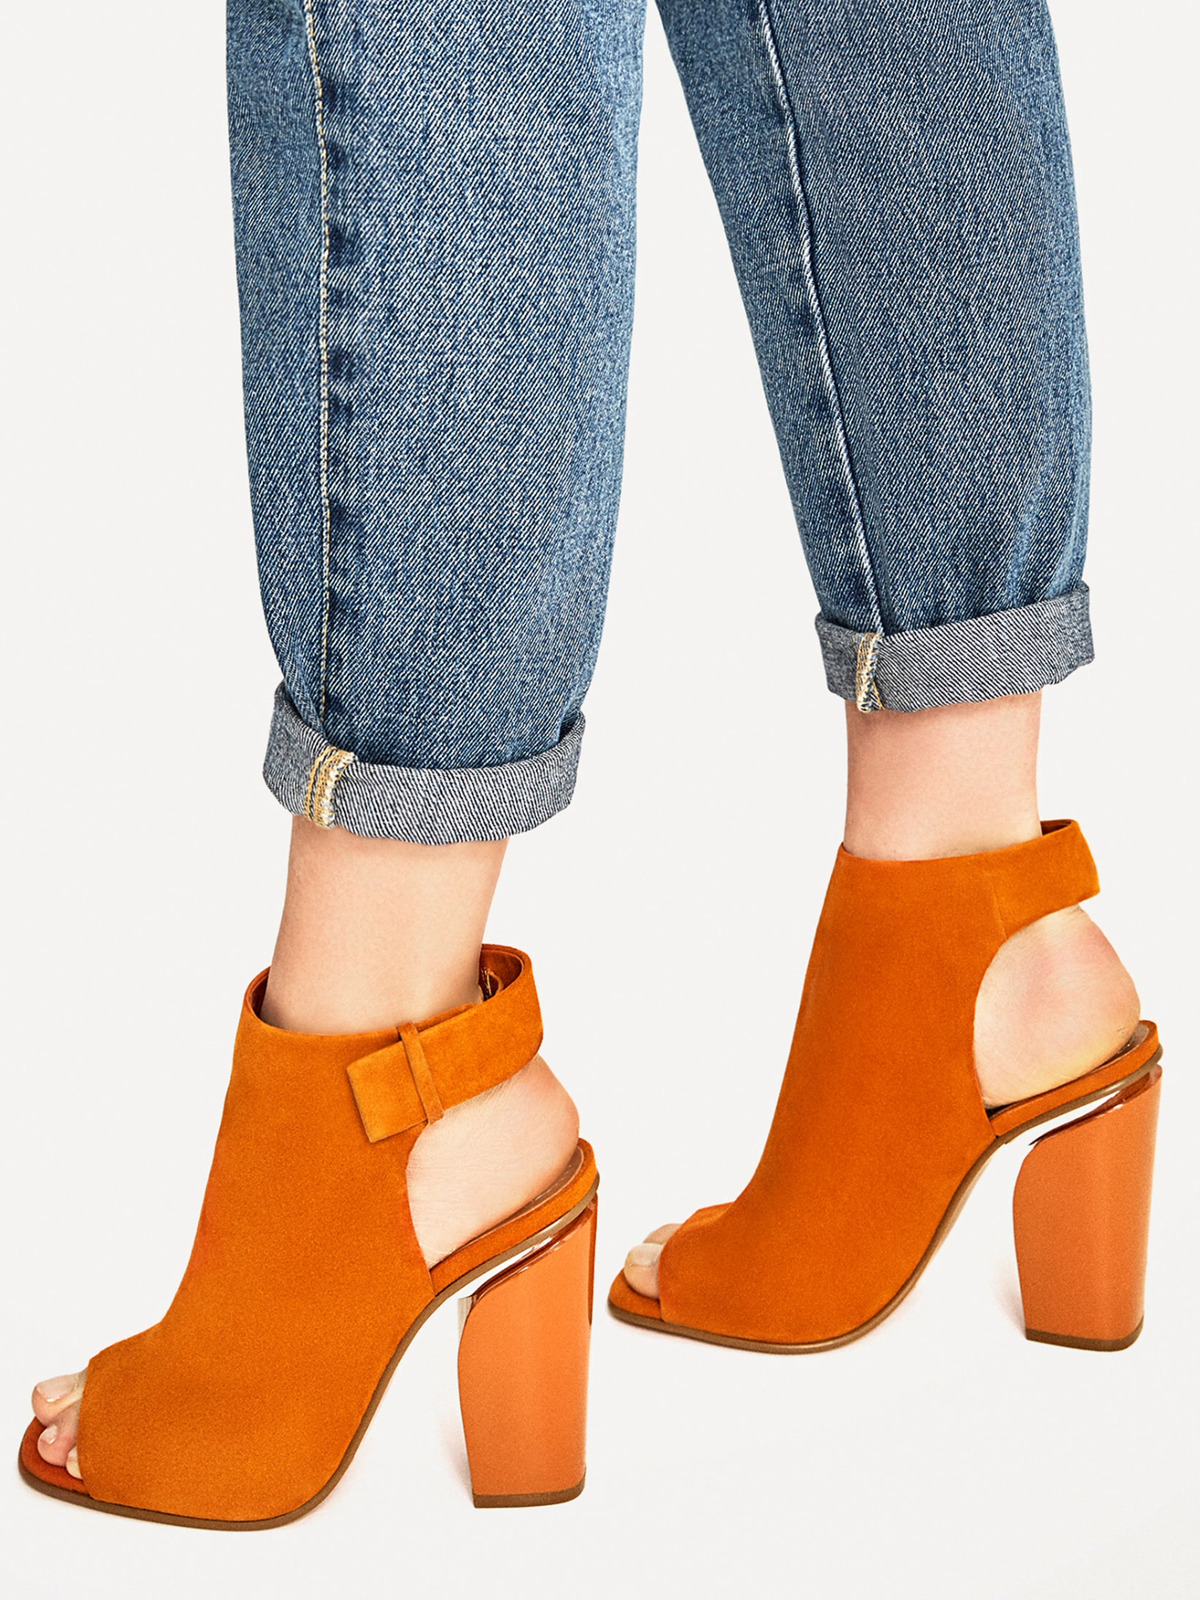 ZARA SS 2017 SLINGBACK LEATHER ANKLE BOOTS ORANGE ALL SIZES REF. 1109/201